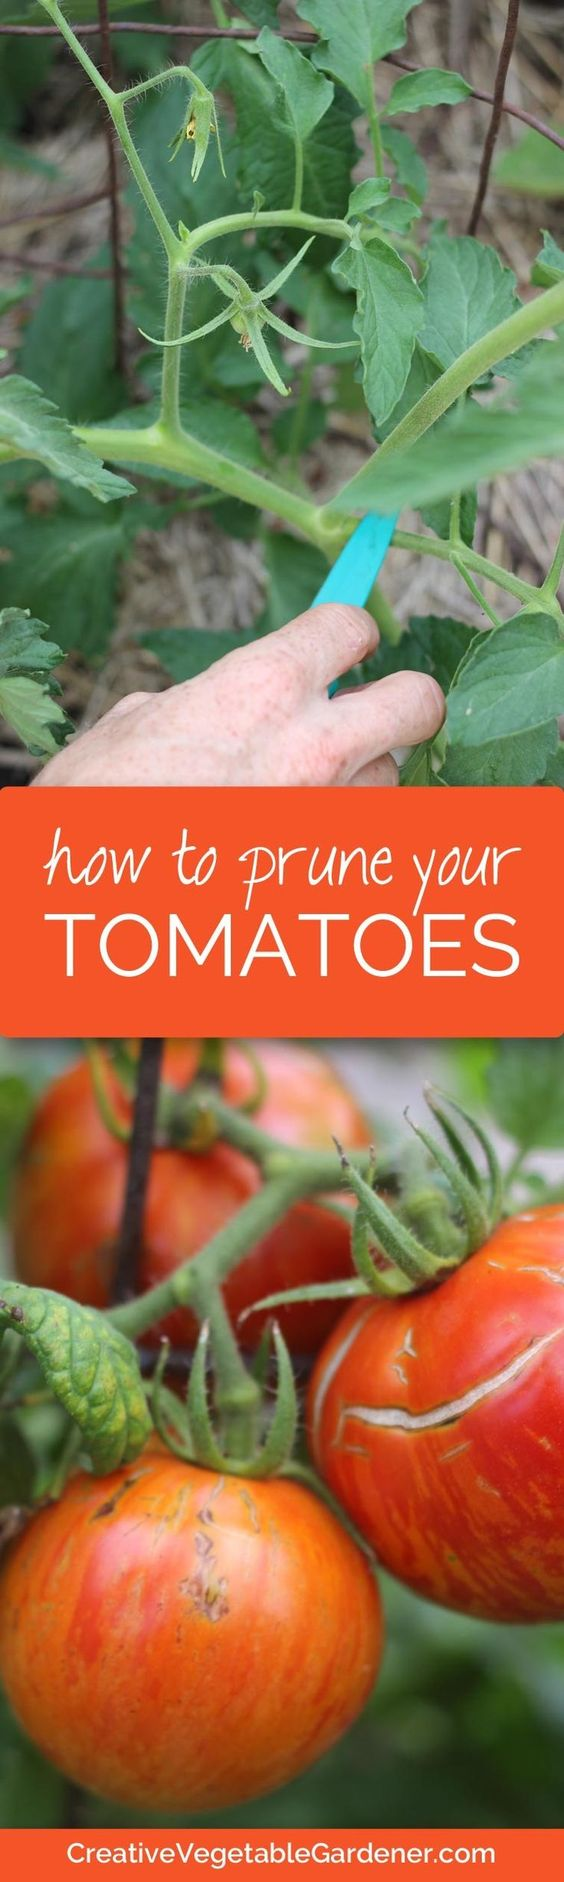 How To Prune Your Tomato Plants Gardens Beautiful And 400 x 300